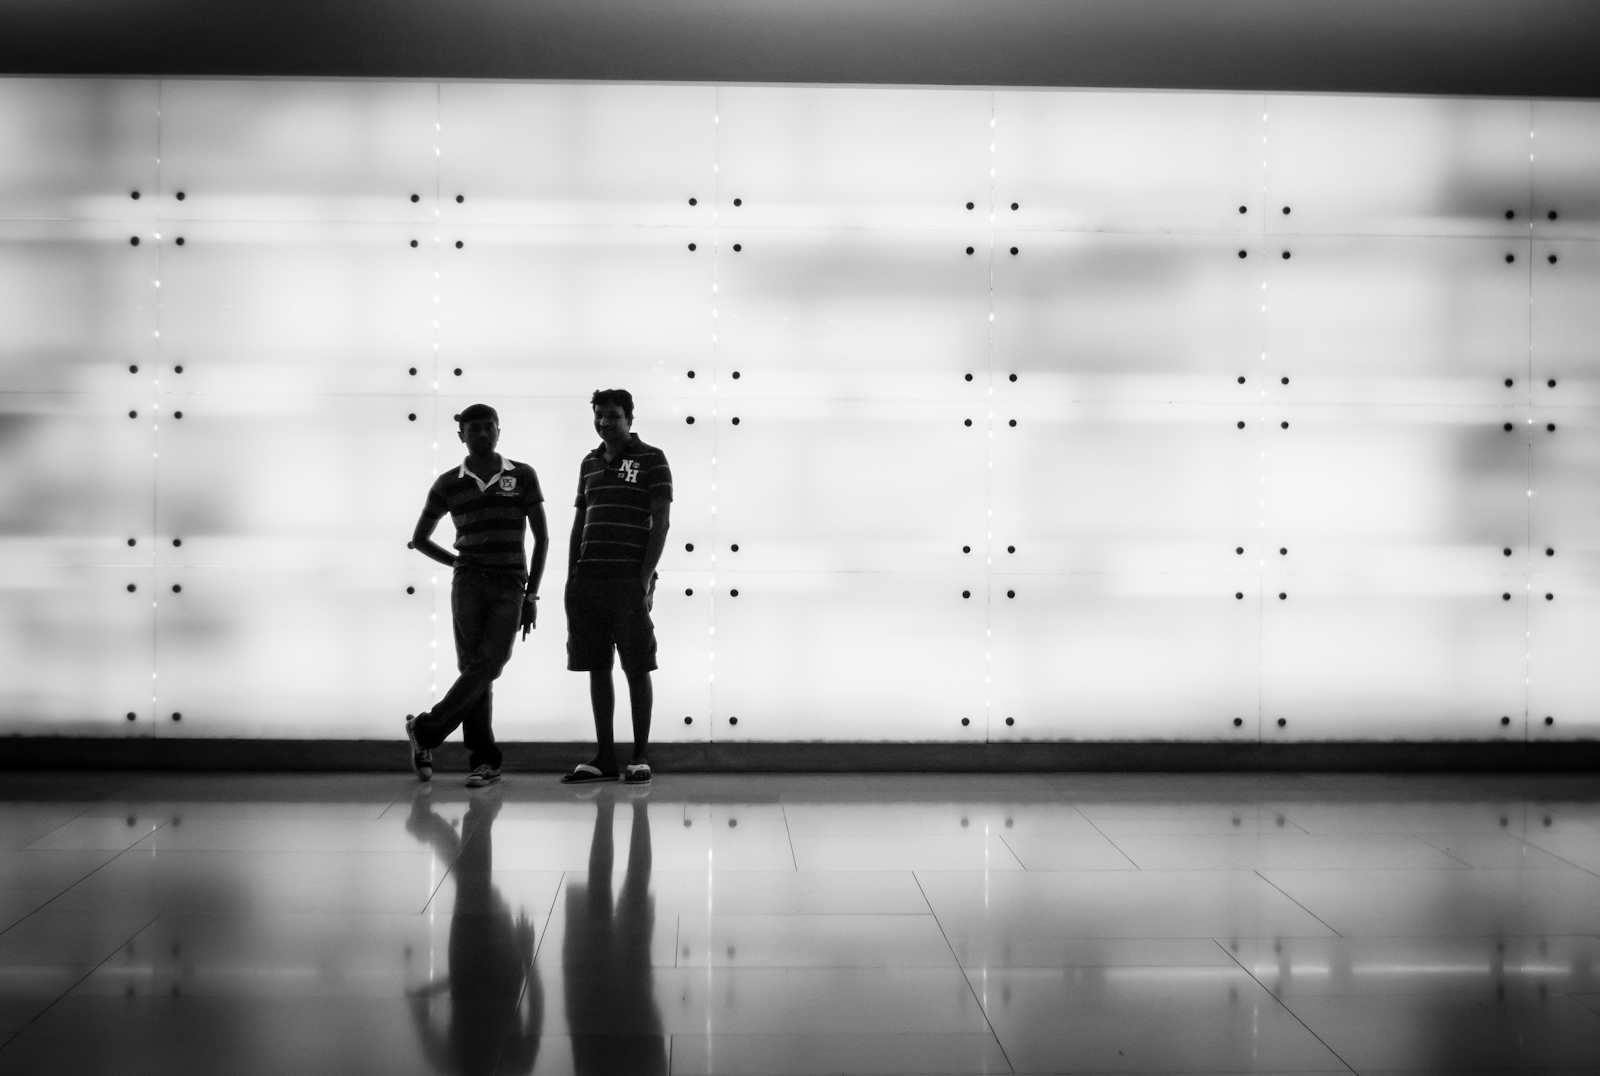 Silhouette of two guys